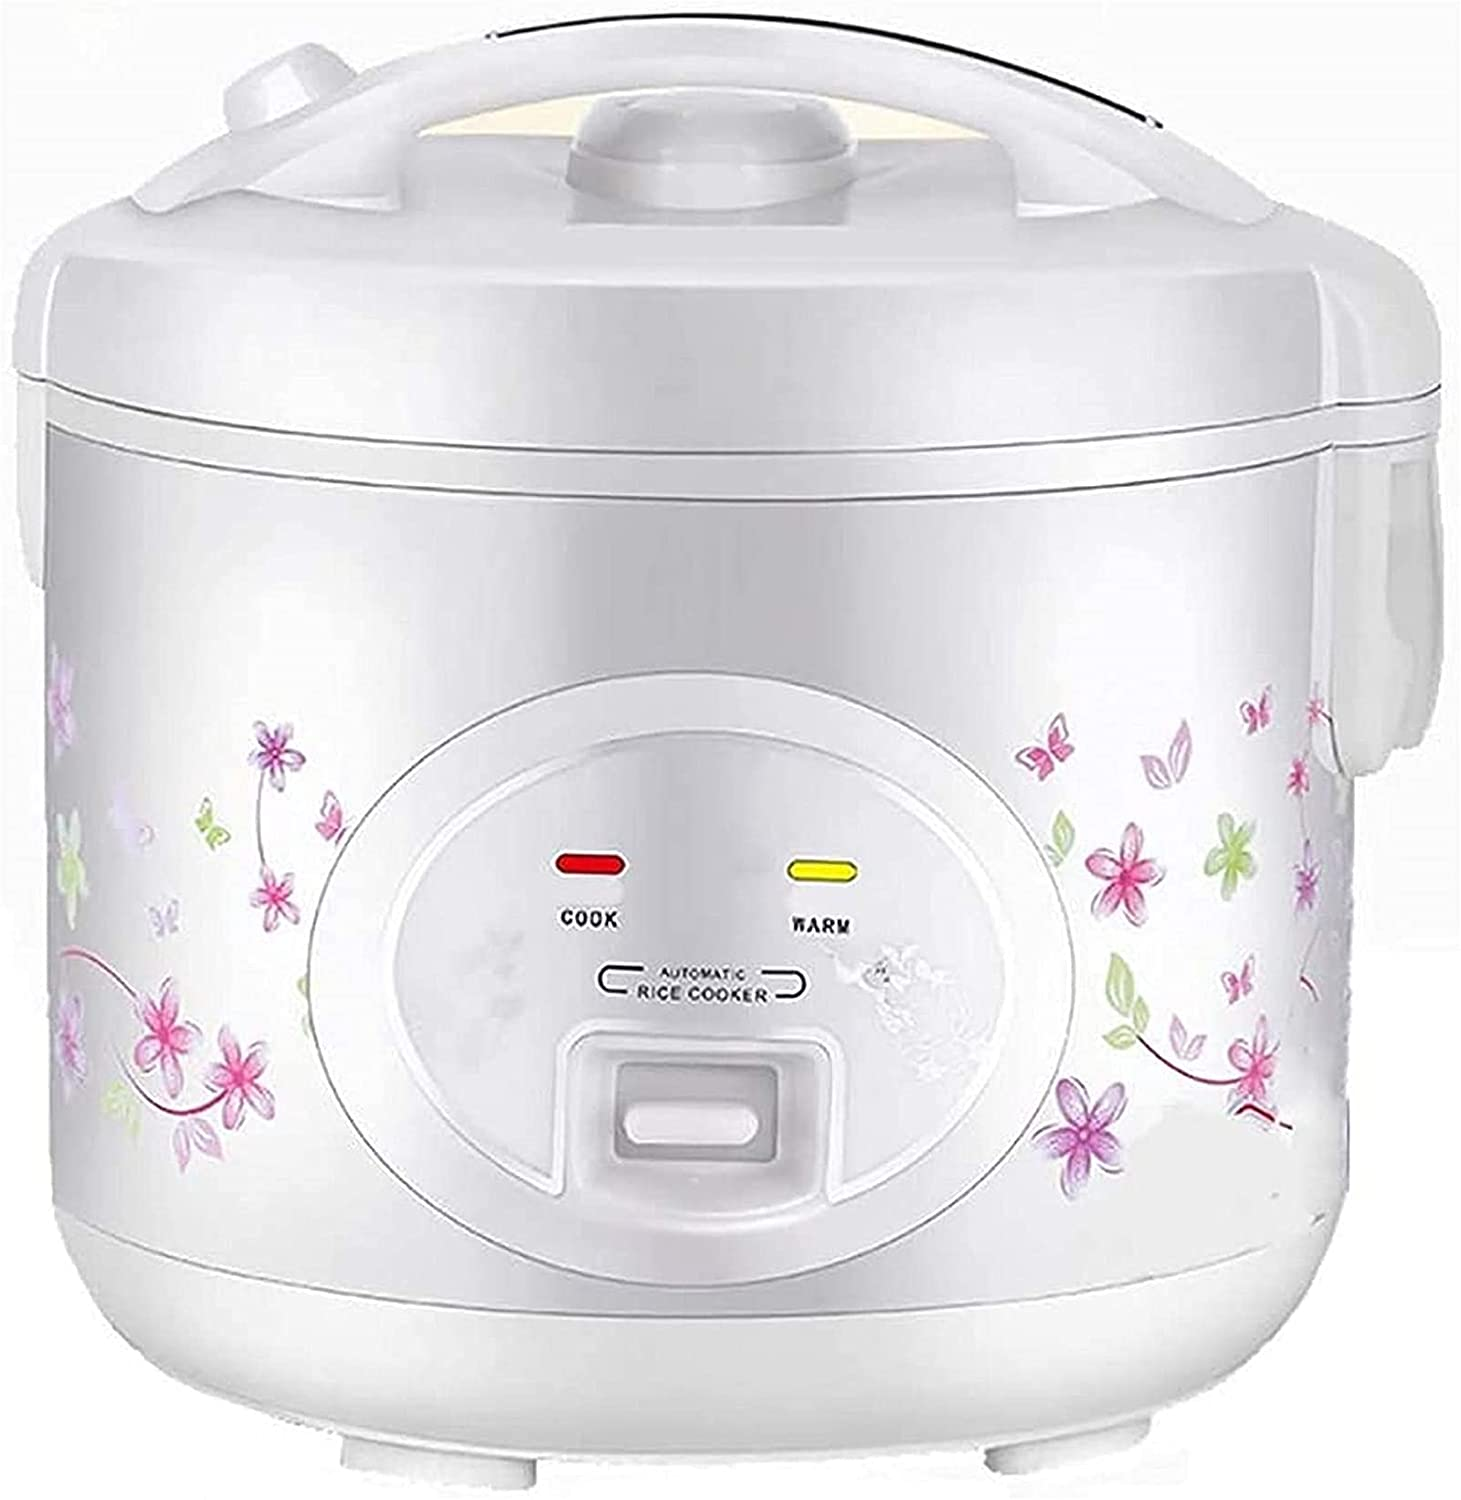 Pans for cooking Rice Cooker Mini Rice Cooker Small Steamer 220V One Button Operation and Multifunction Electric Cooker to Keep Warm Automatic Suitable for Families Student Office Workers White